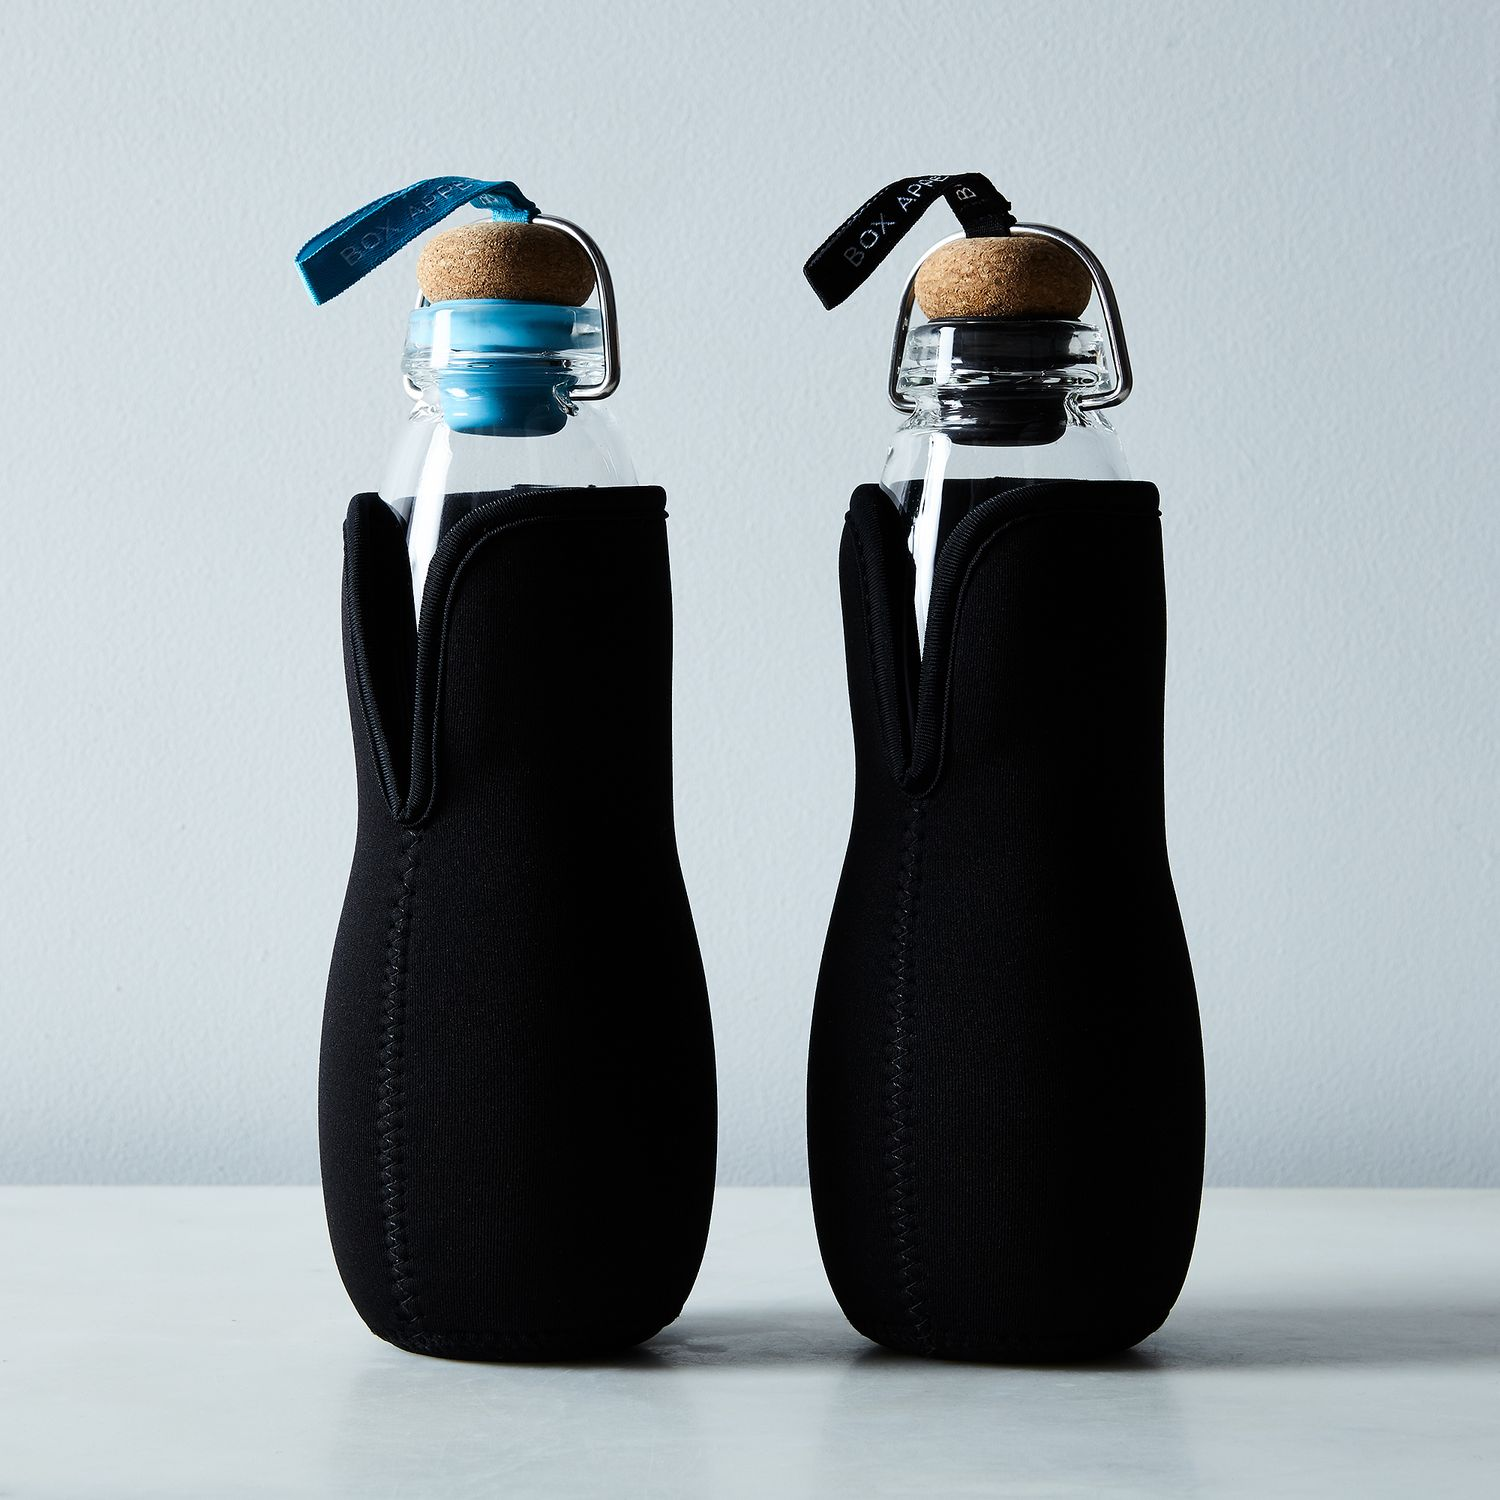 Glass Water Bottle With Charcoal Filter On Food52